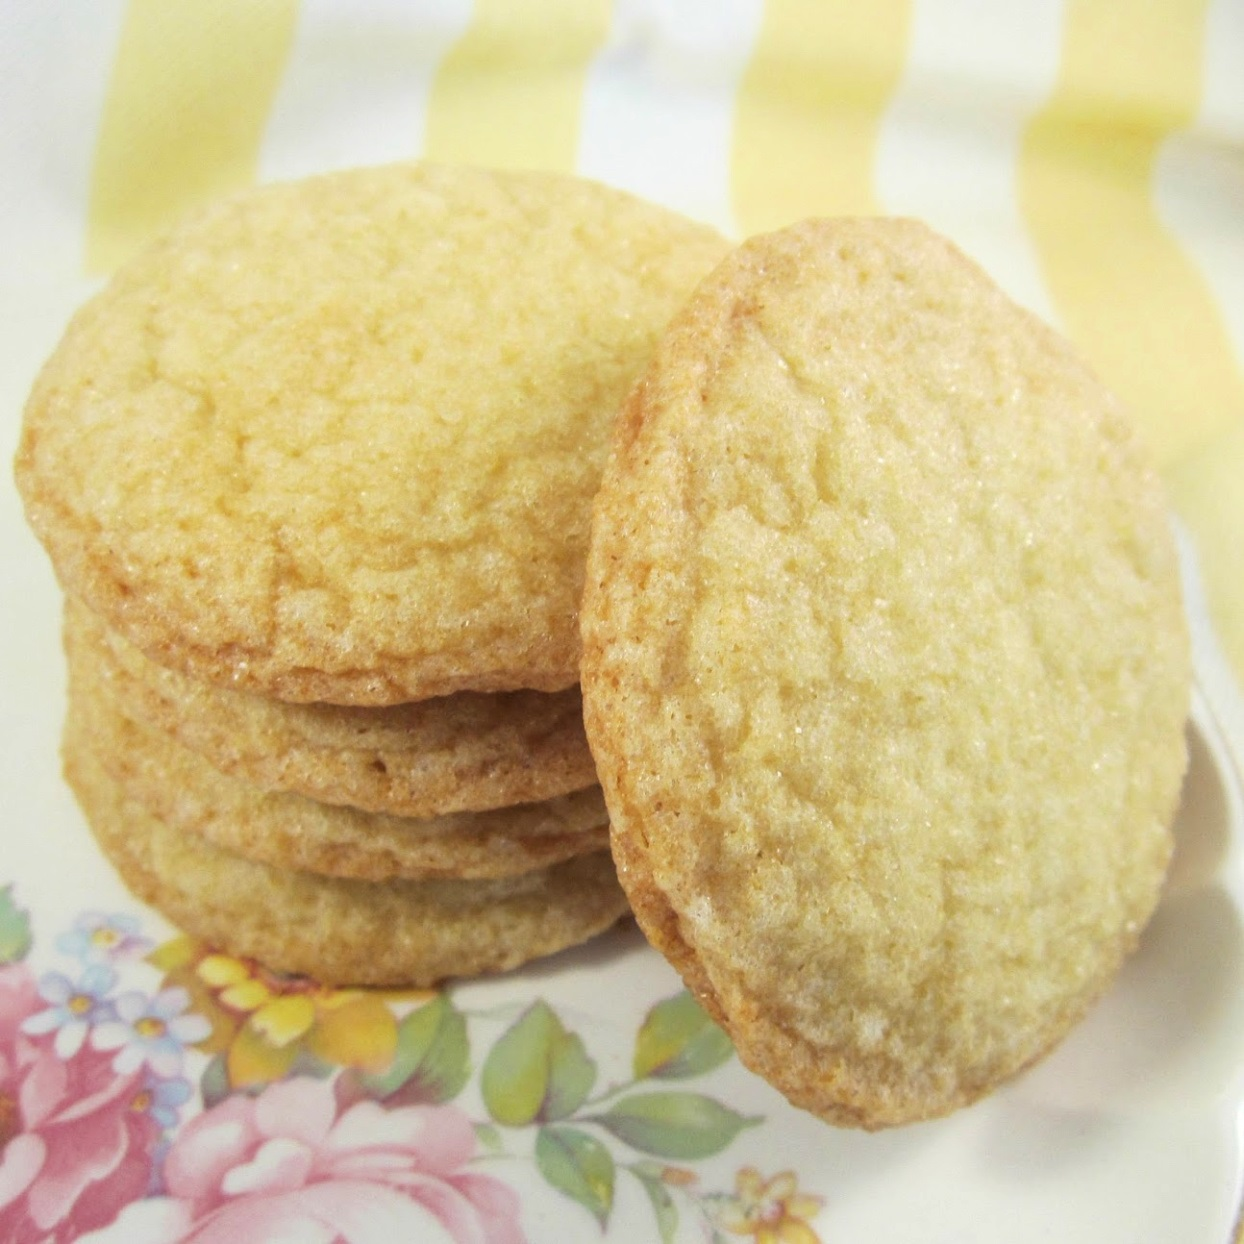 Lemon cookies are perfect for getting that sweet fix in but in a more tart, refreshing way. These cookies are ready in about an hour and a half. Sprinkle with sugar on top, if desired.